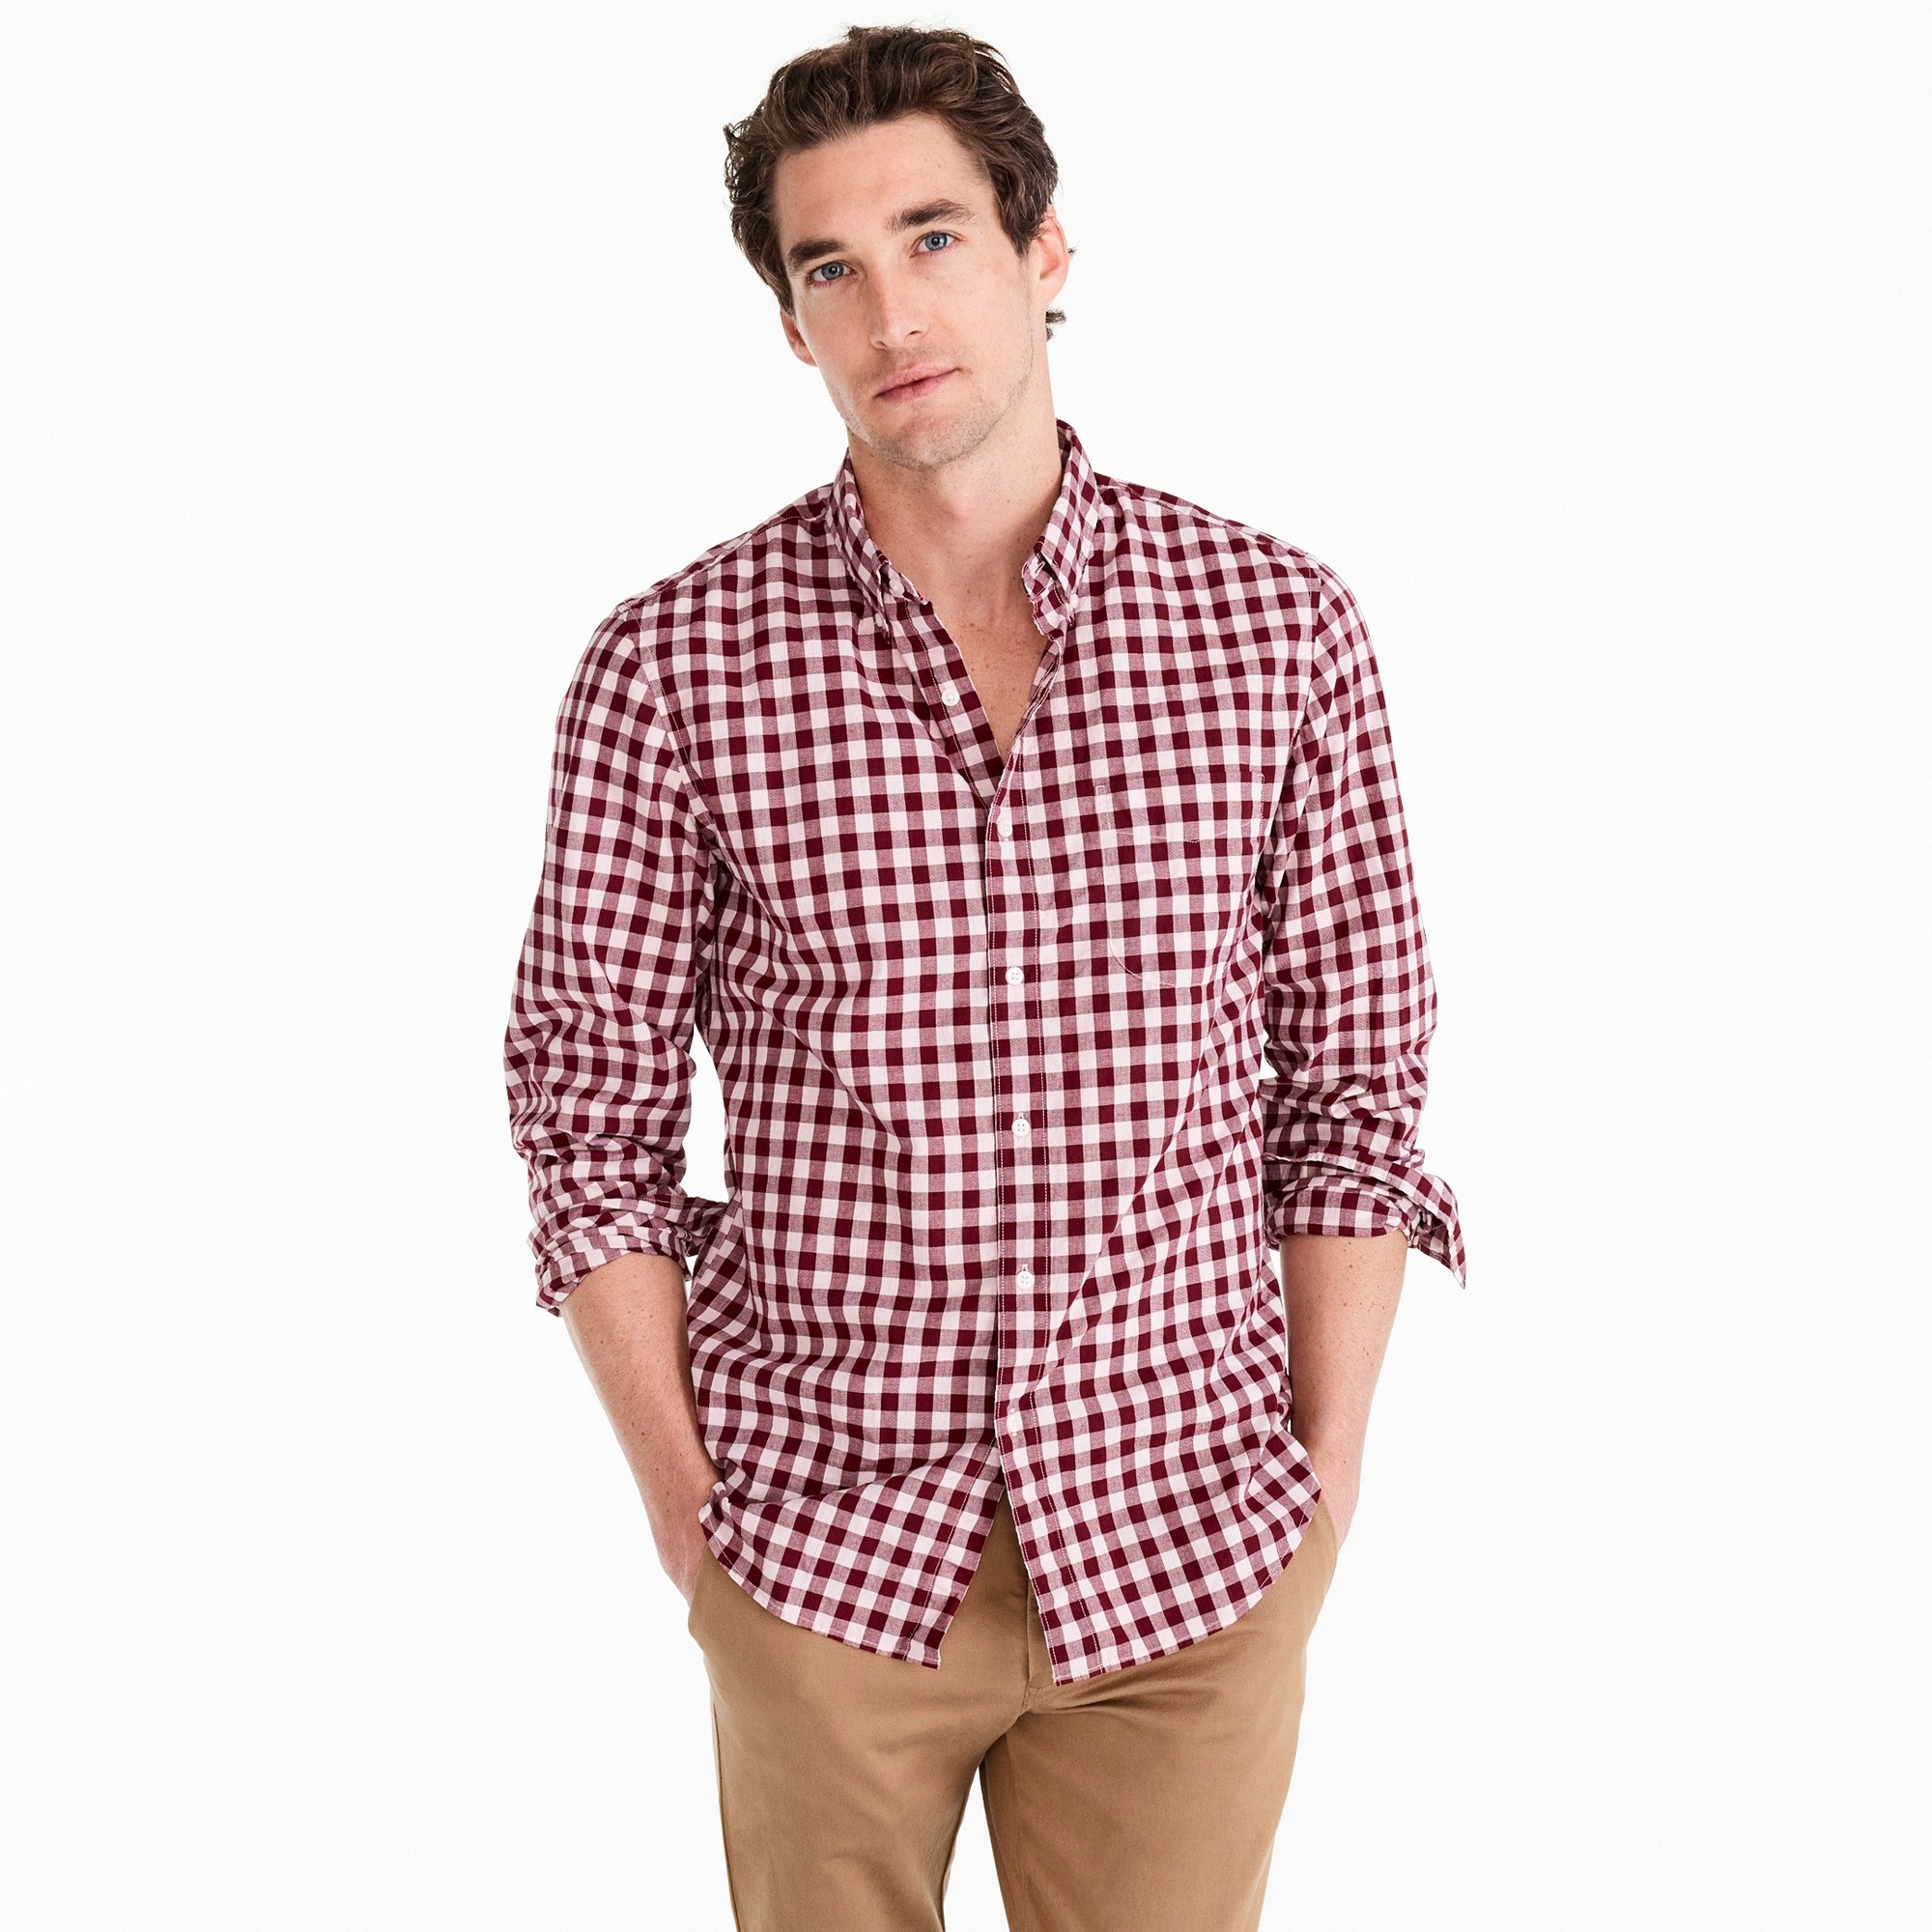 Stretch shirt in heather poplin gingham - Men's Shirts | J.Crew